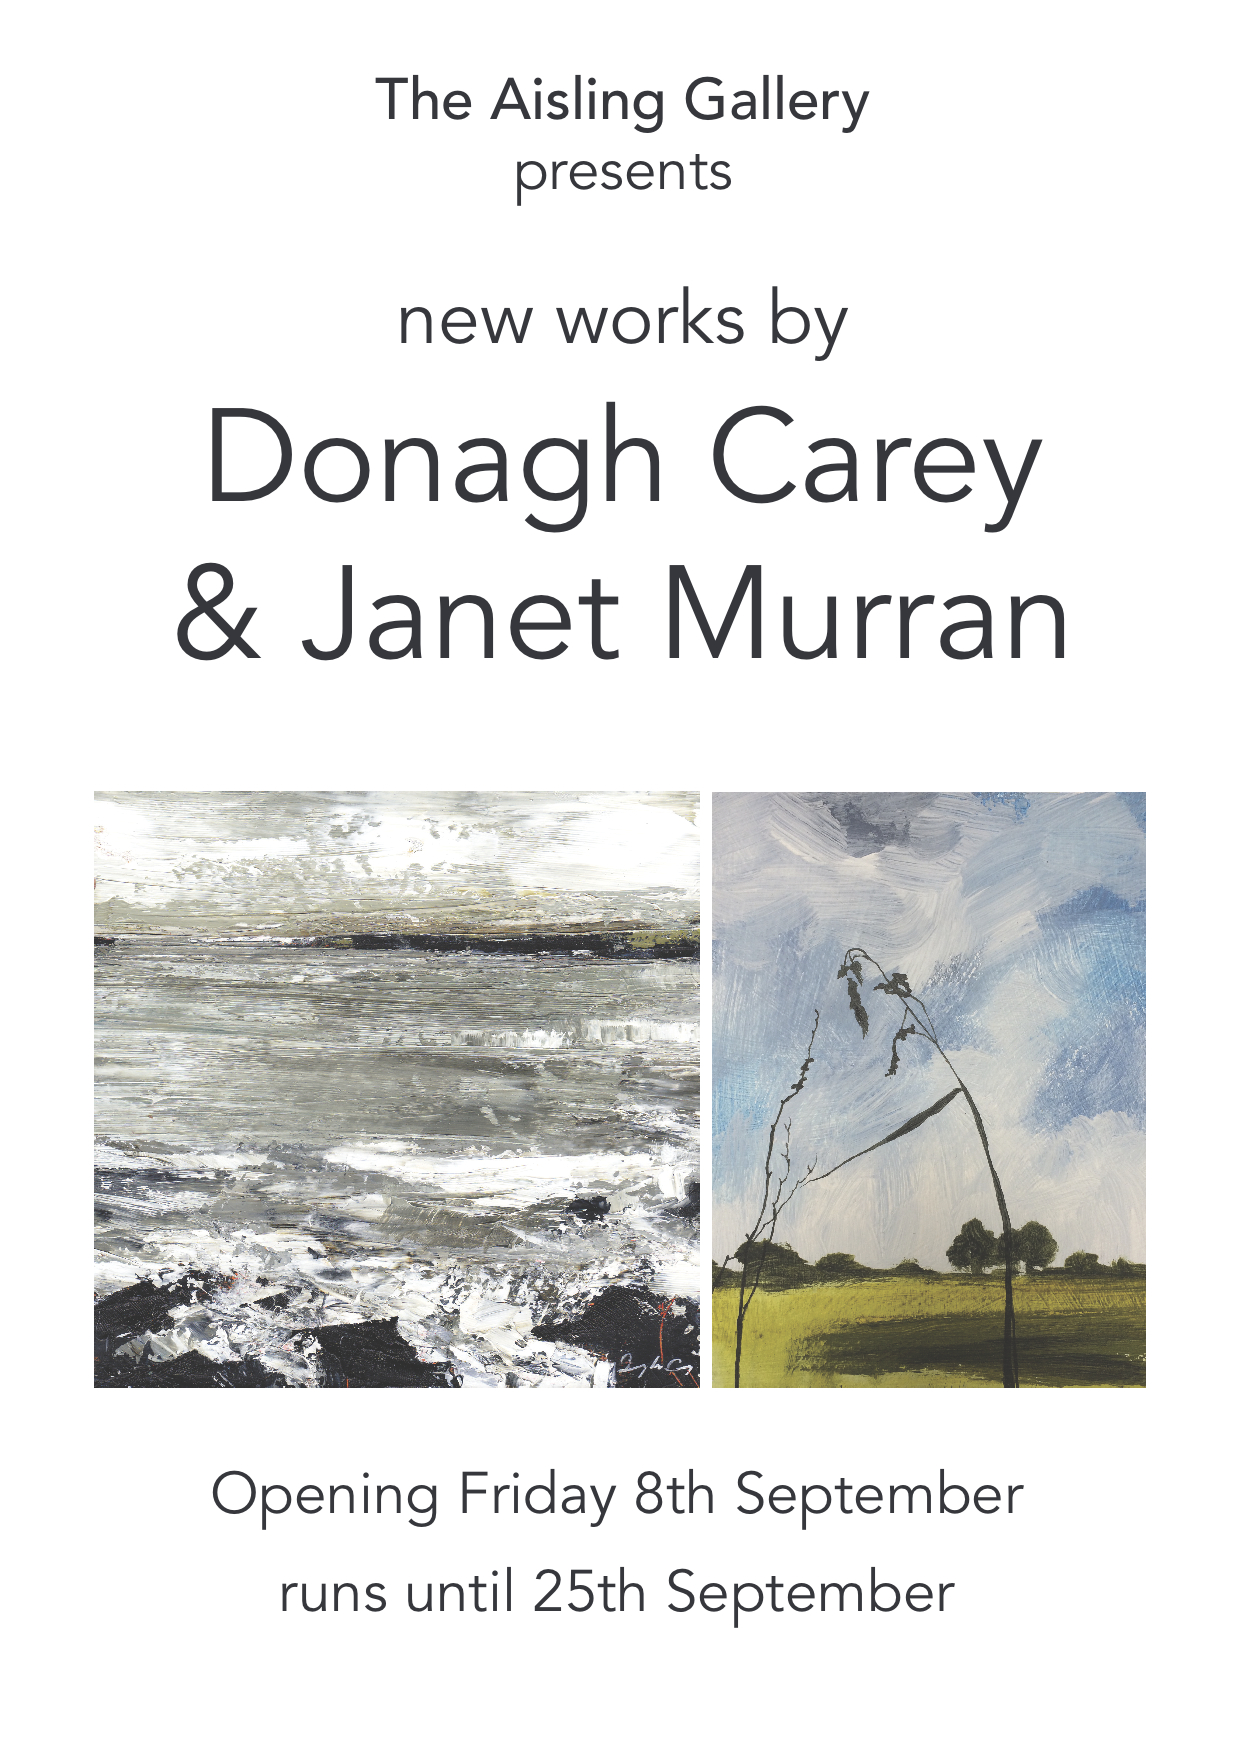 donagh-carey-exhibition-poster.jpg